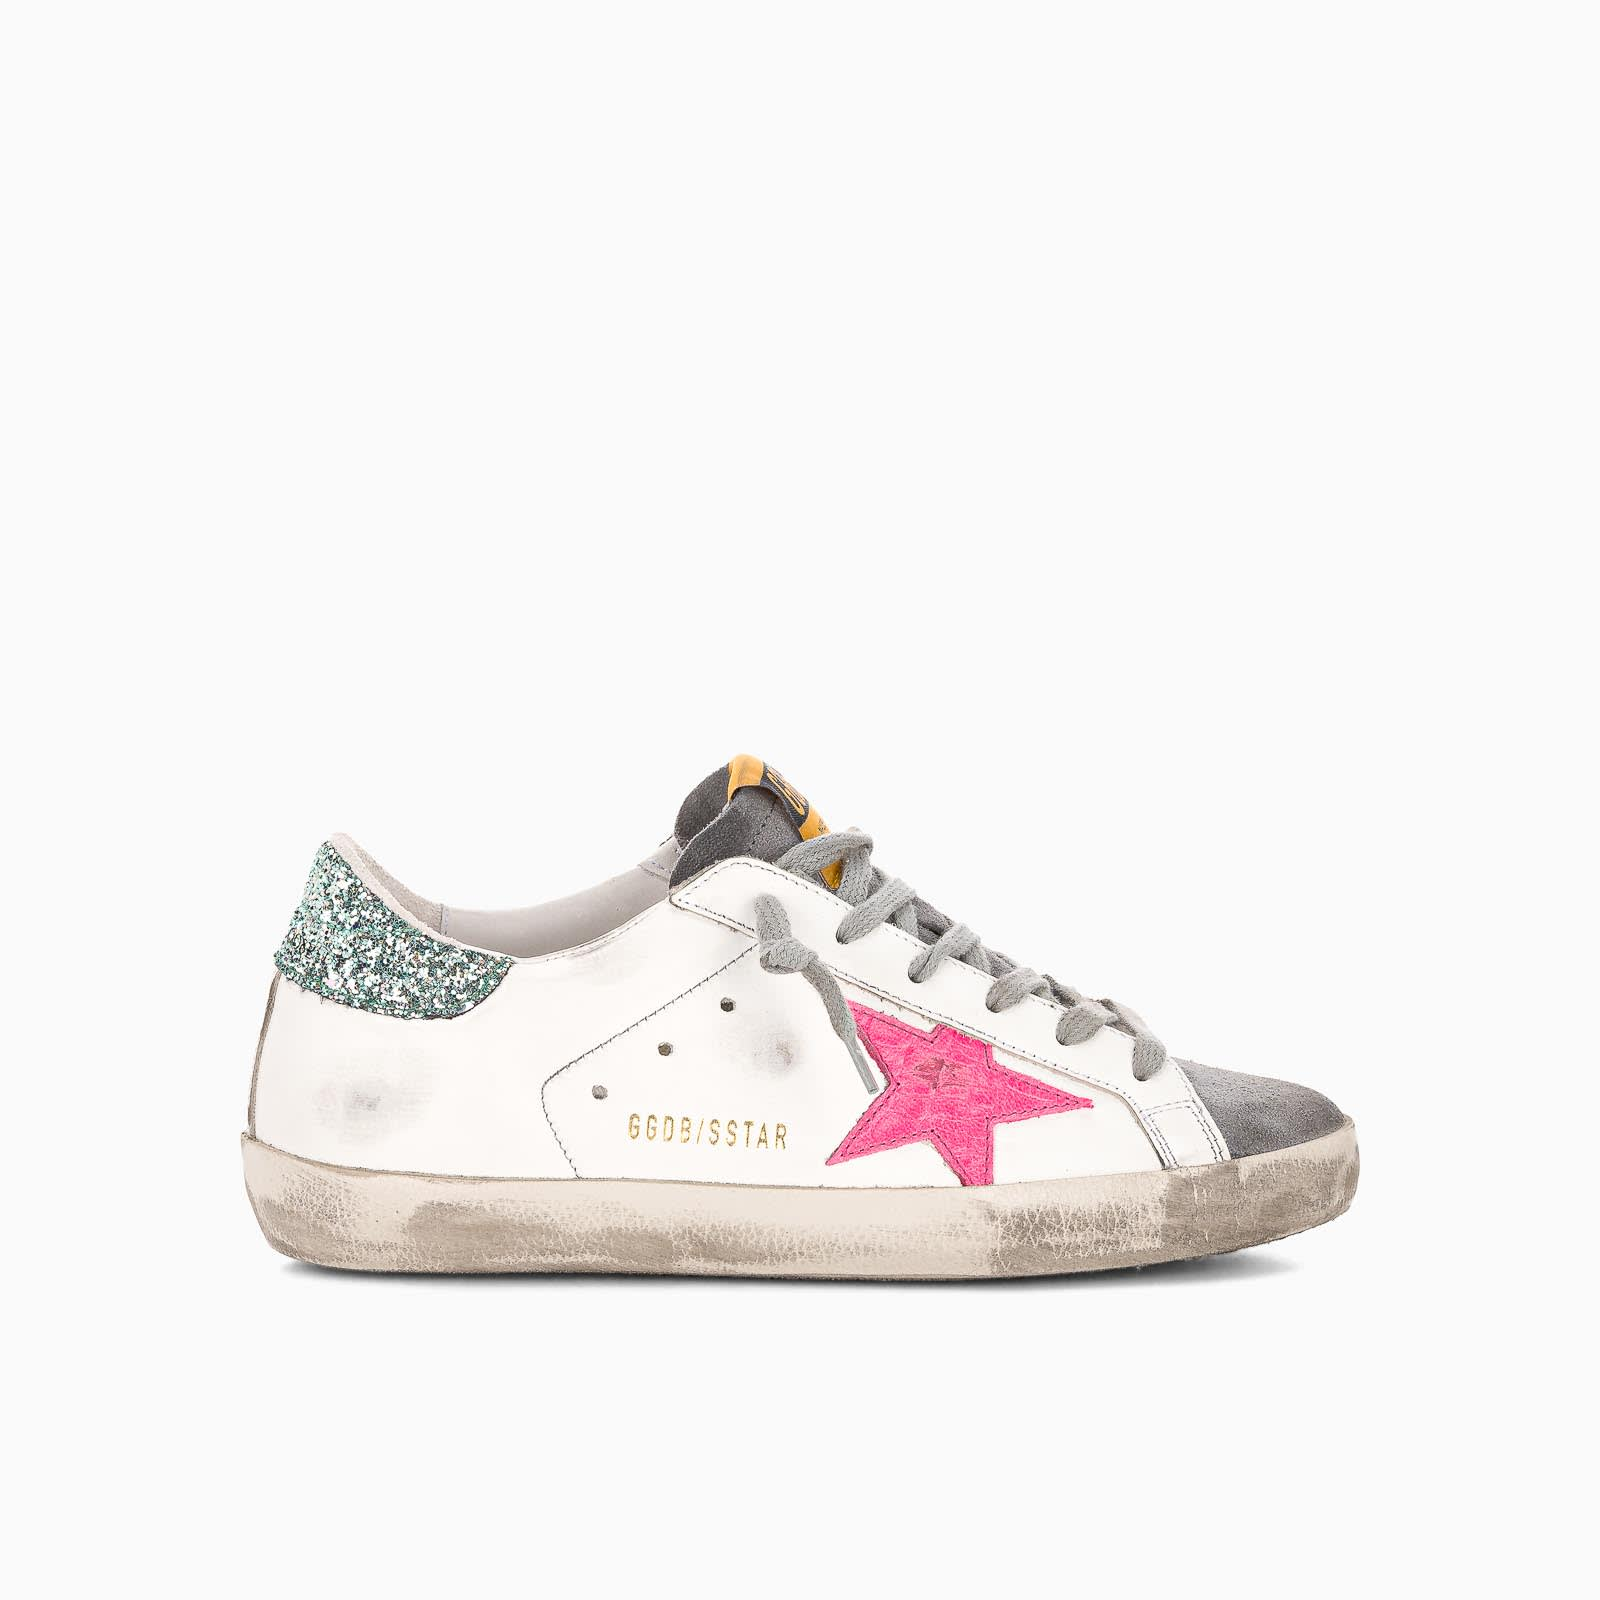 Golden Goose Leathers WHITE LEATHER SUPER-STAR SNEAKERS WITH GLITTERY HEEL TAB